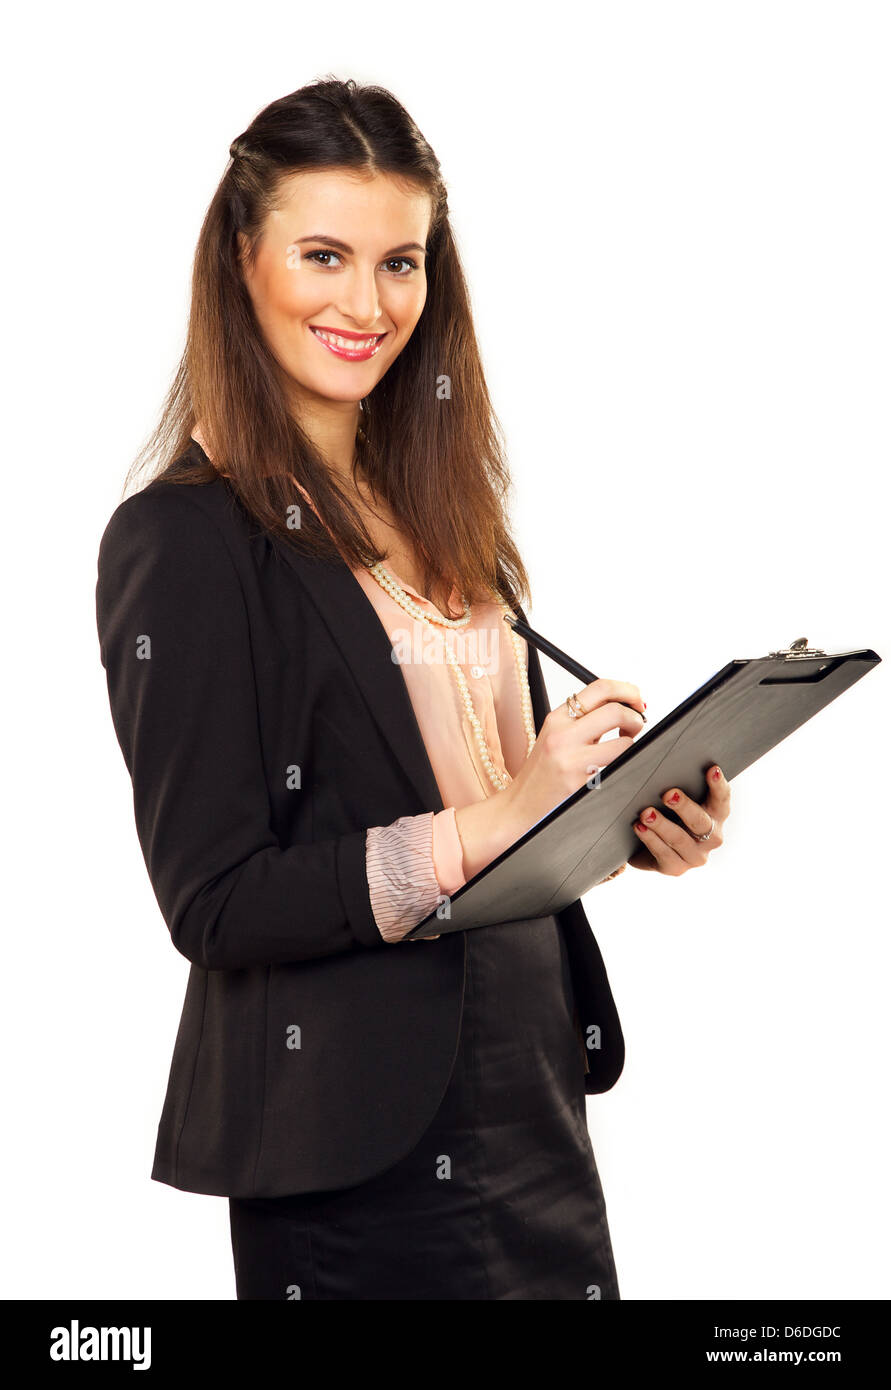 Portrait of a female professional smiling while writing on clipboard - Stock Image